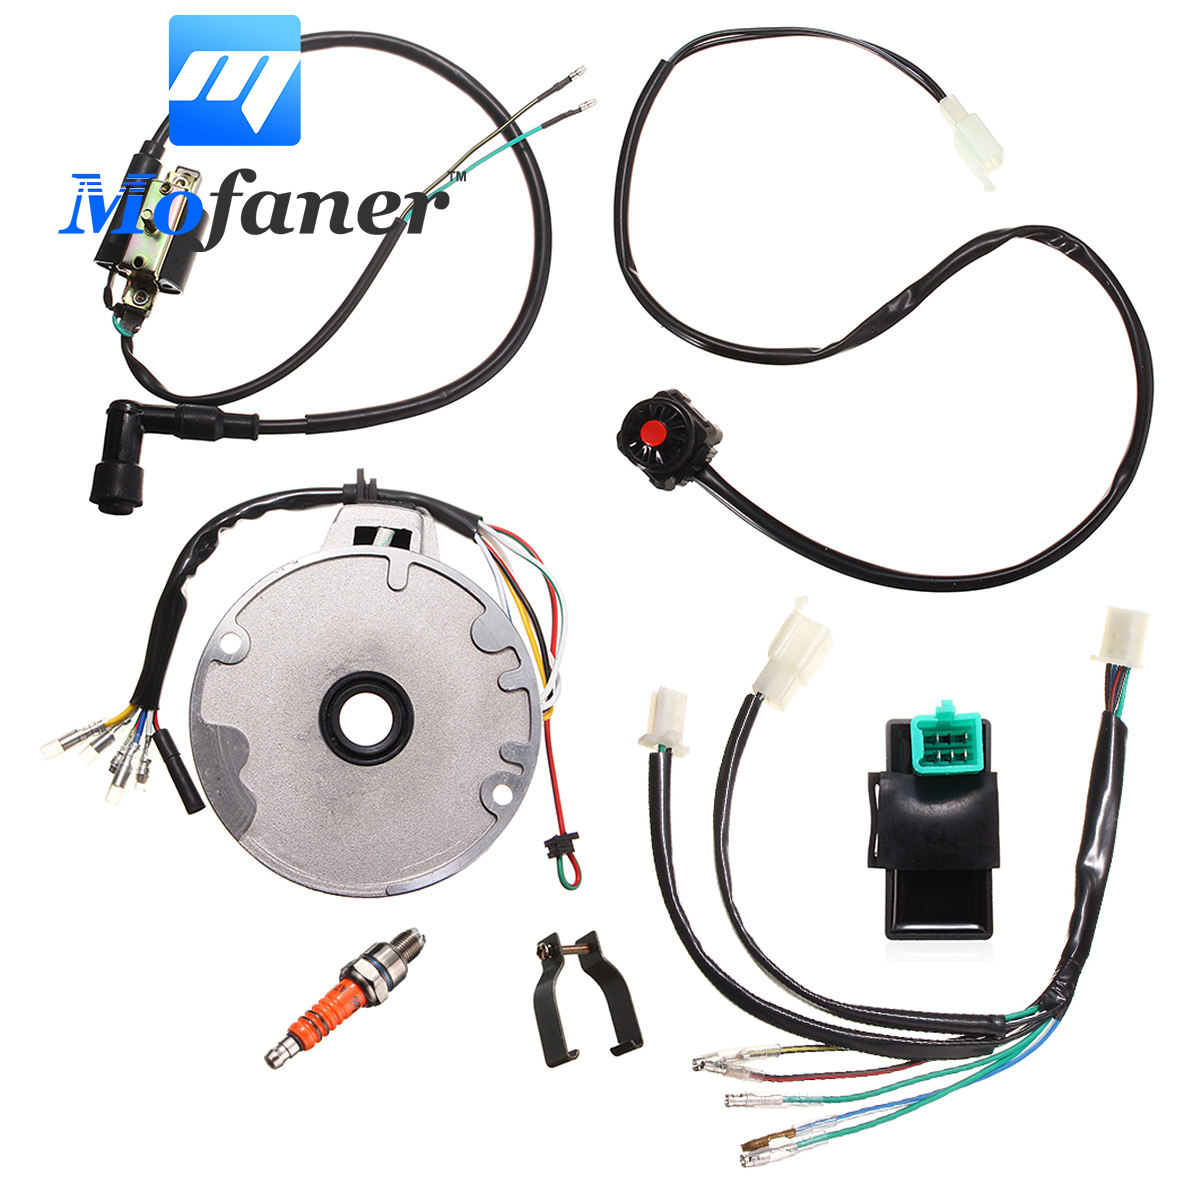 Compare Prices On Motorcycle Wiring Harness Online Shopping Buy